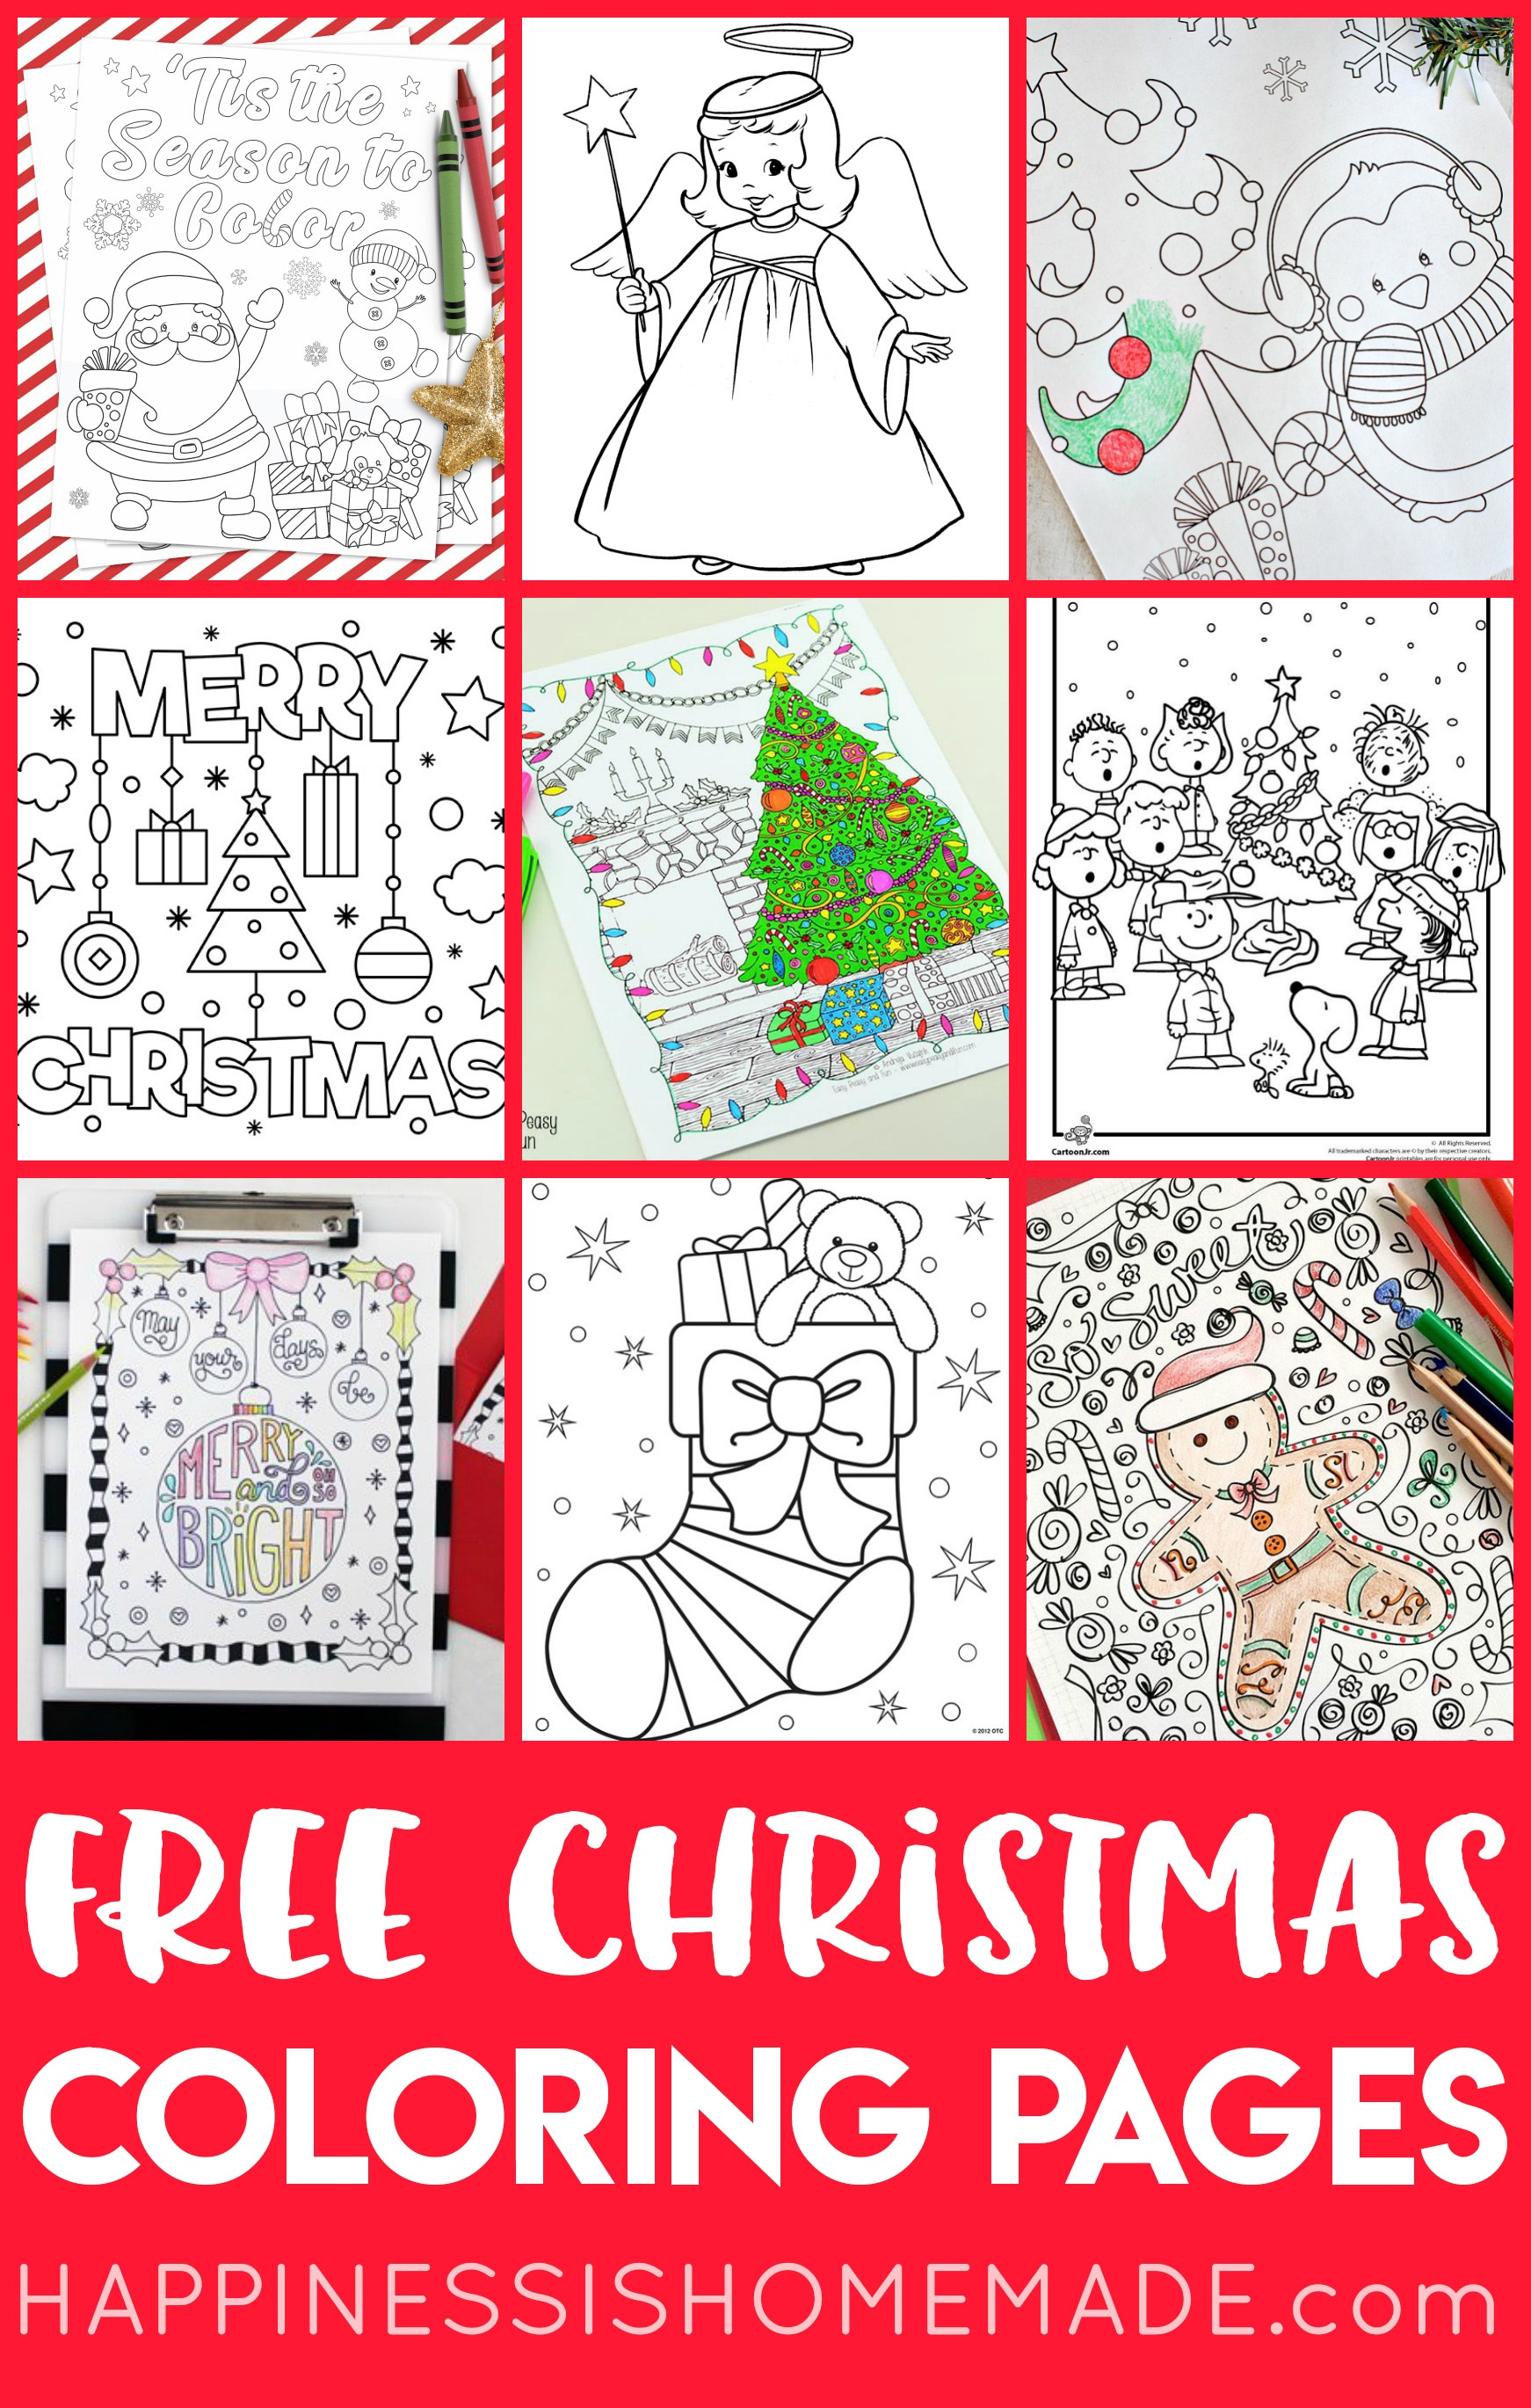 Free Christmas Coloring Pages For Adults And Kids - Happiness Is - Free Printable Christmas Coloring Pages For Kids